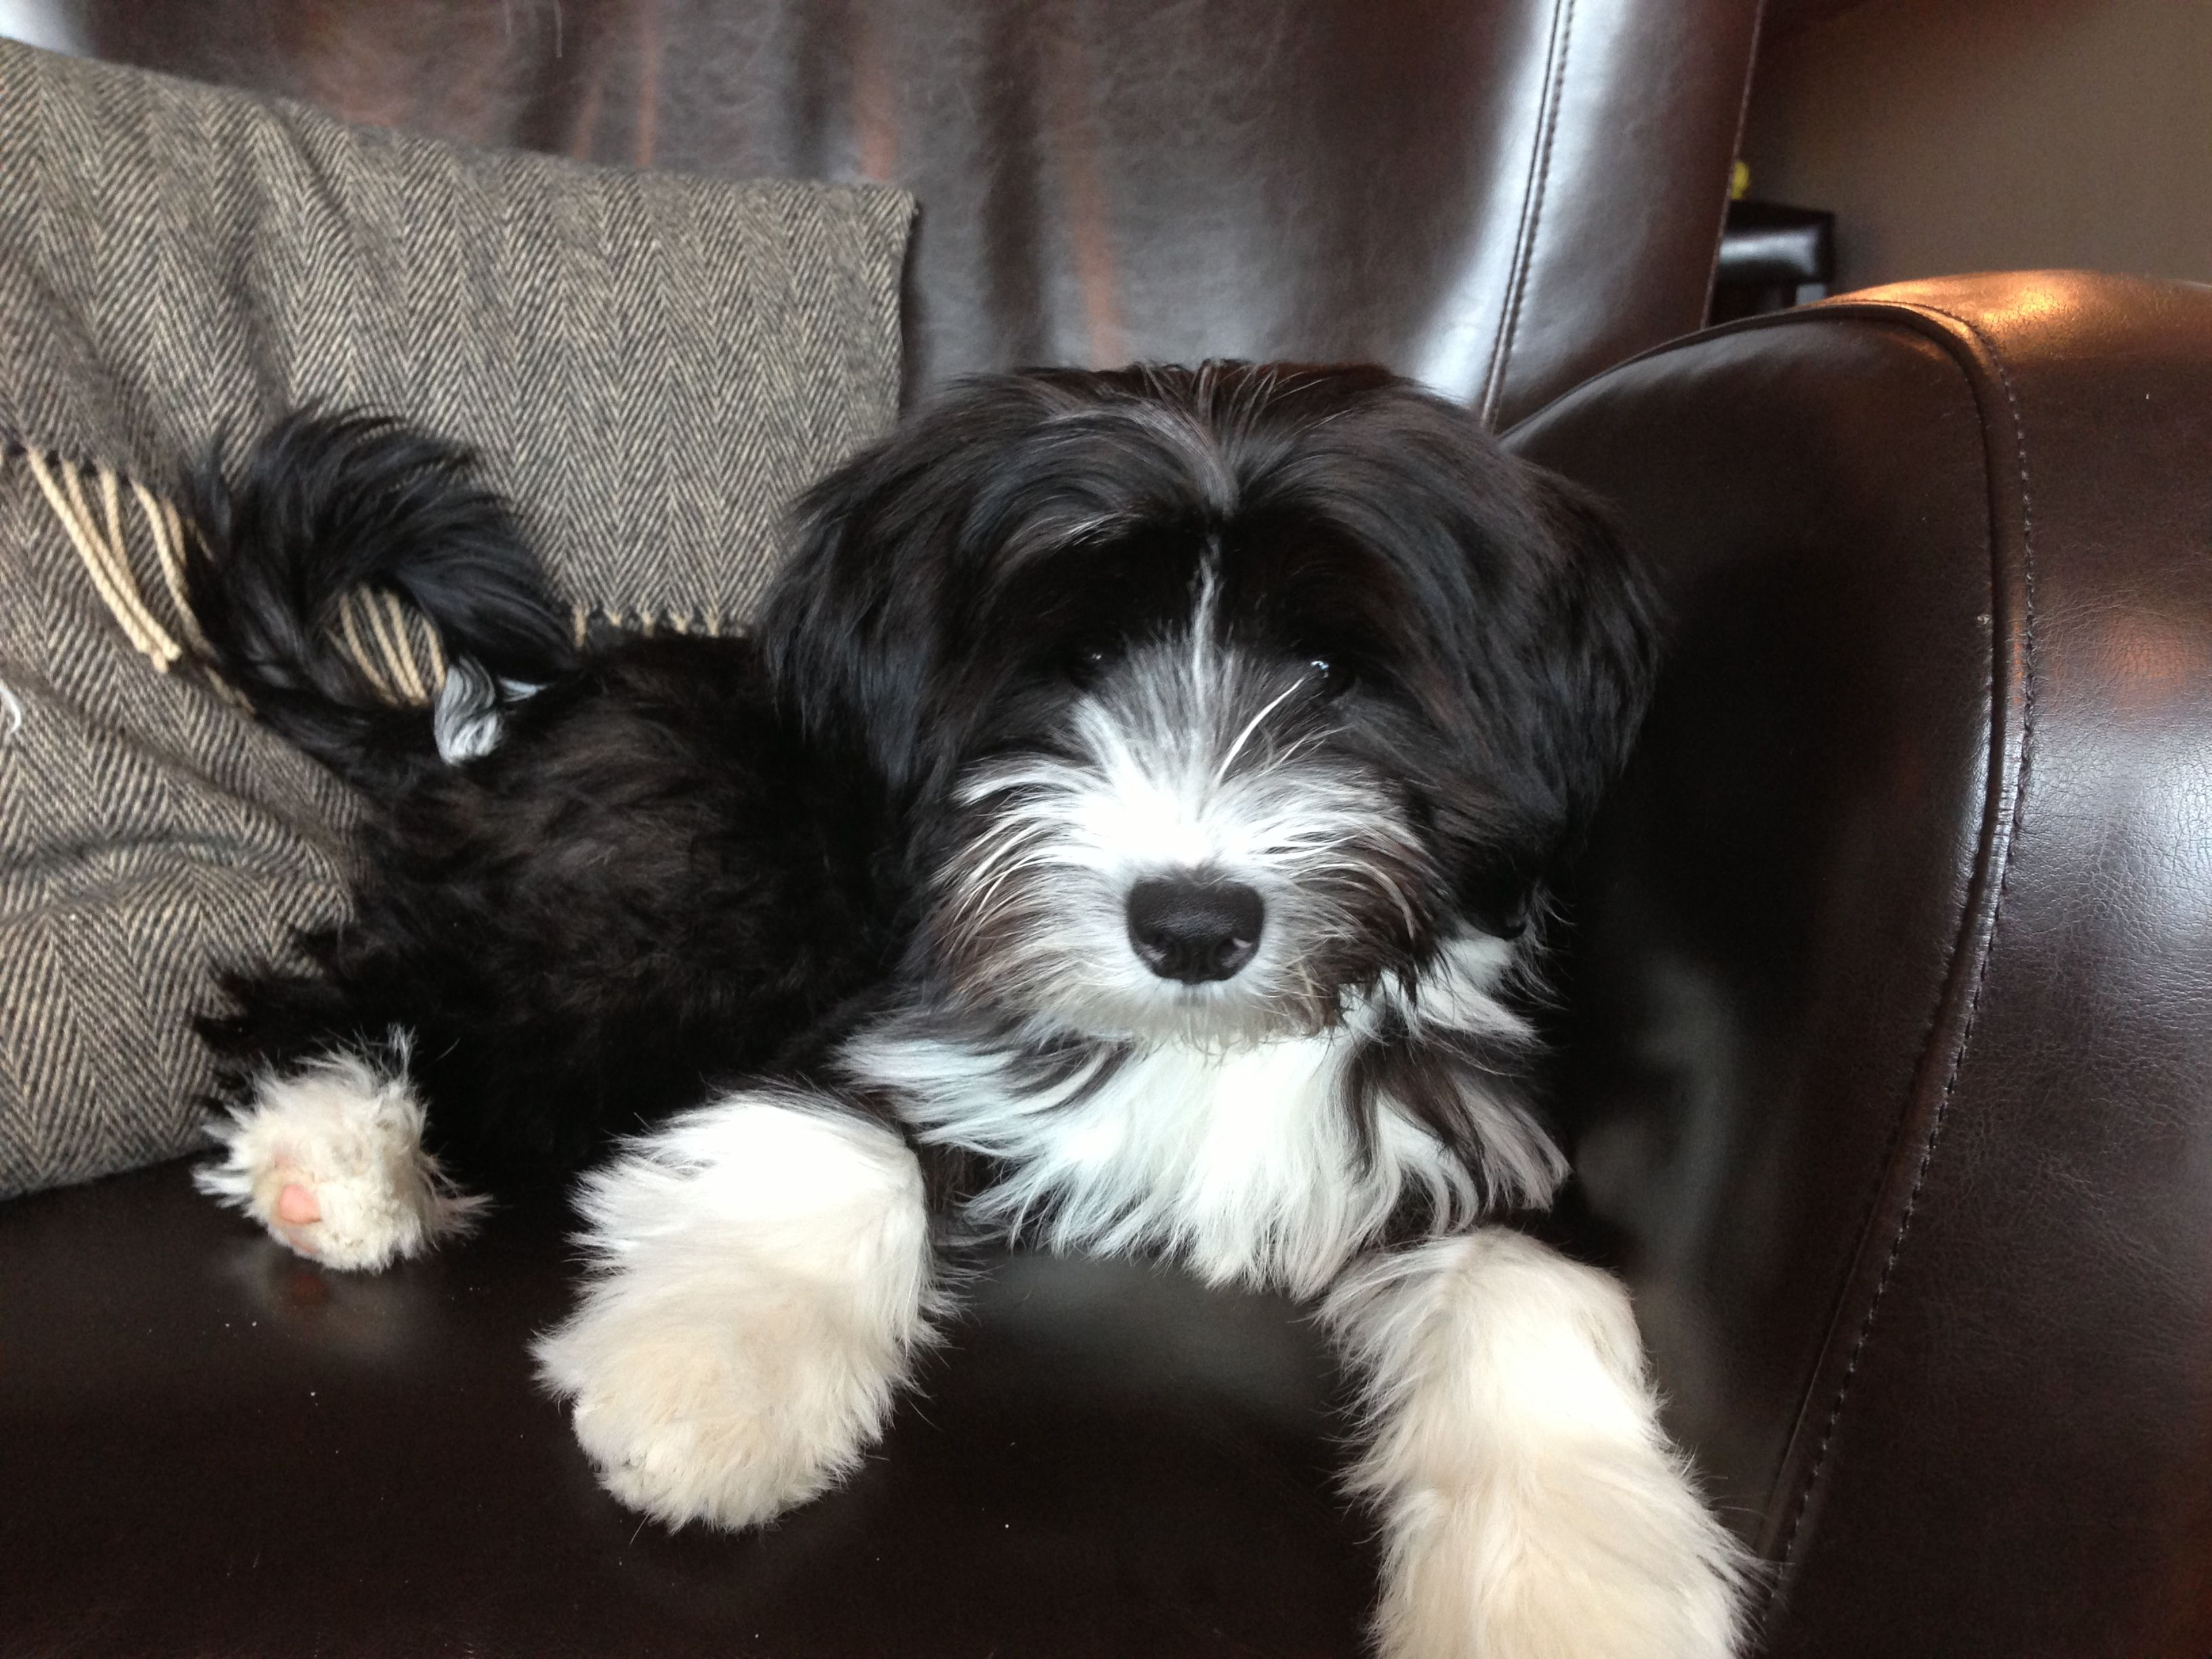 Tibetan Terrier Dalai Grace 20 Wks Tibetan Terrier Terrier Puppies Animal Antics